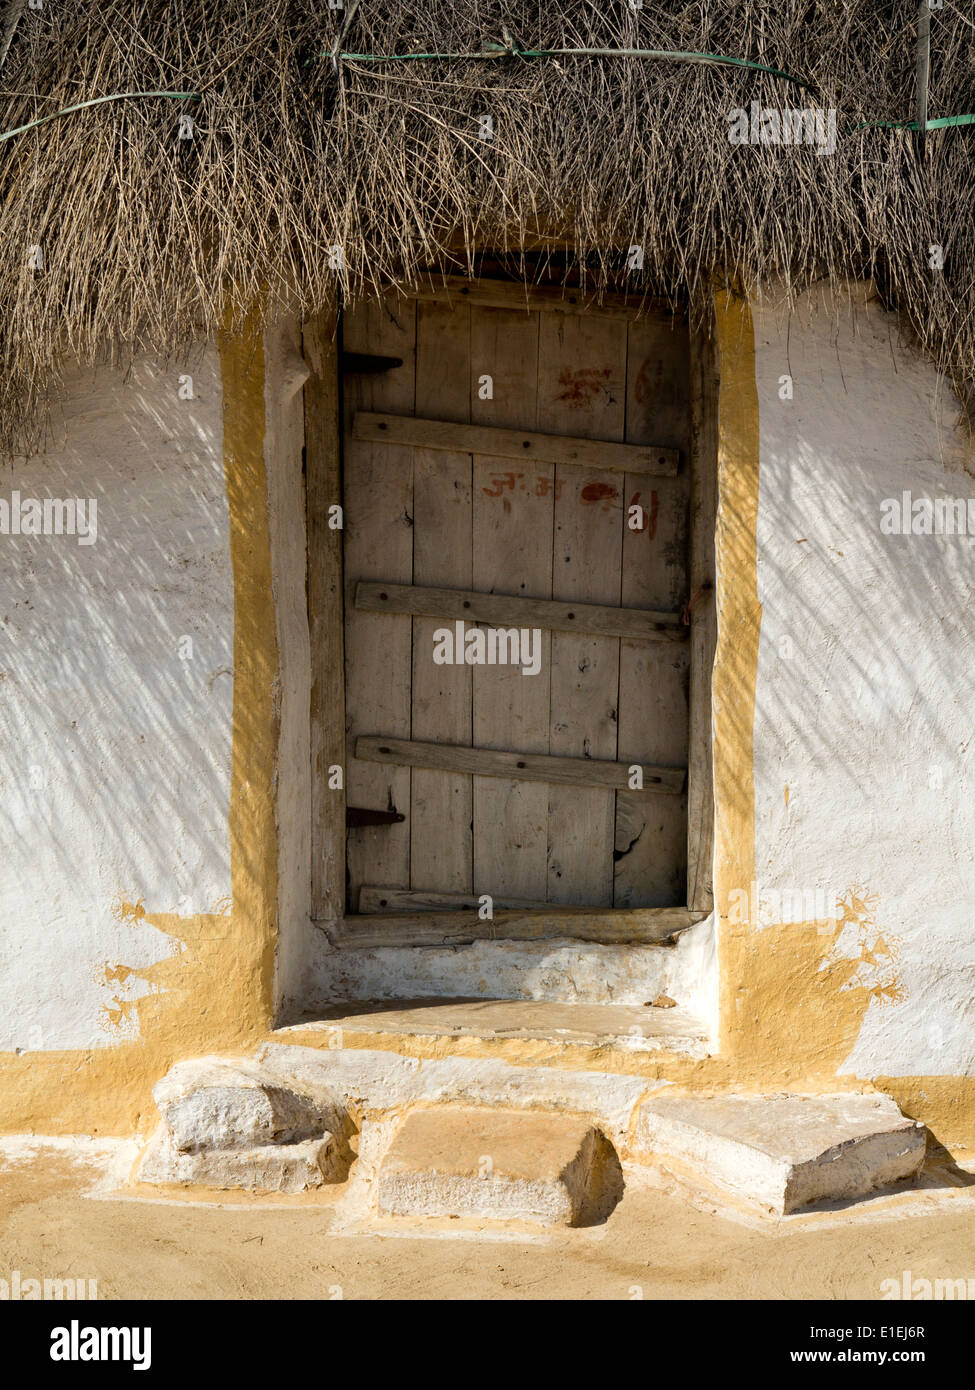 India, Rajasthan, Jaisalmer, door of thatched Guest House of Thar Desert farm, with painted walls outside main compound - Stock Image